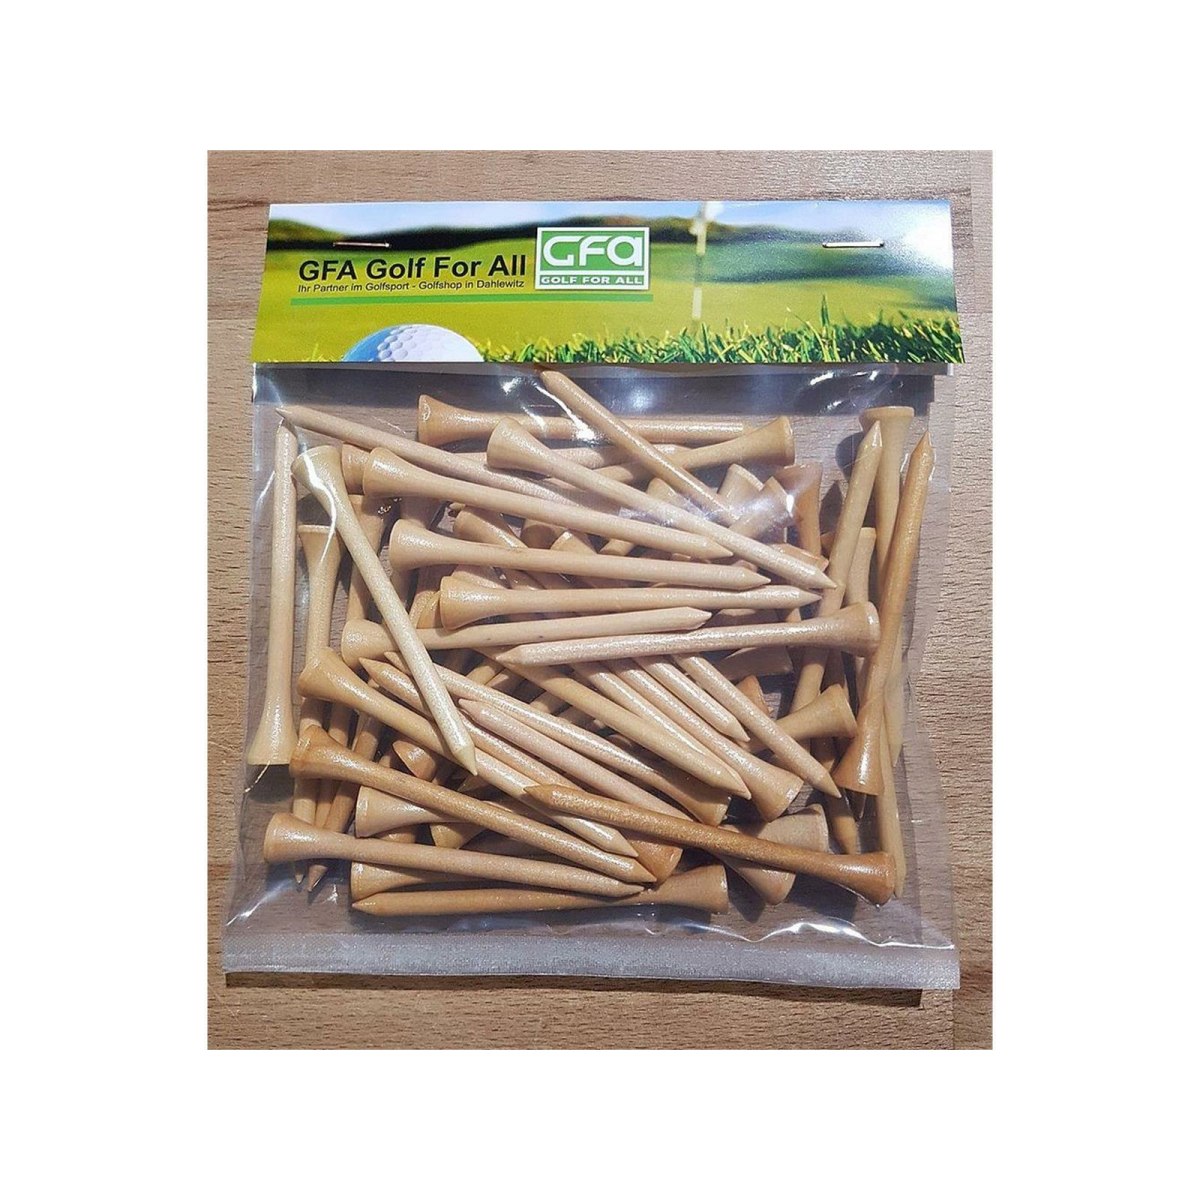 Golf-for-all - Natur Holz Tees 50 Stück 2 1/8-54 mm Lang - Golftee - Wood - Tee